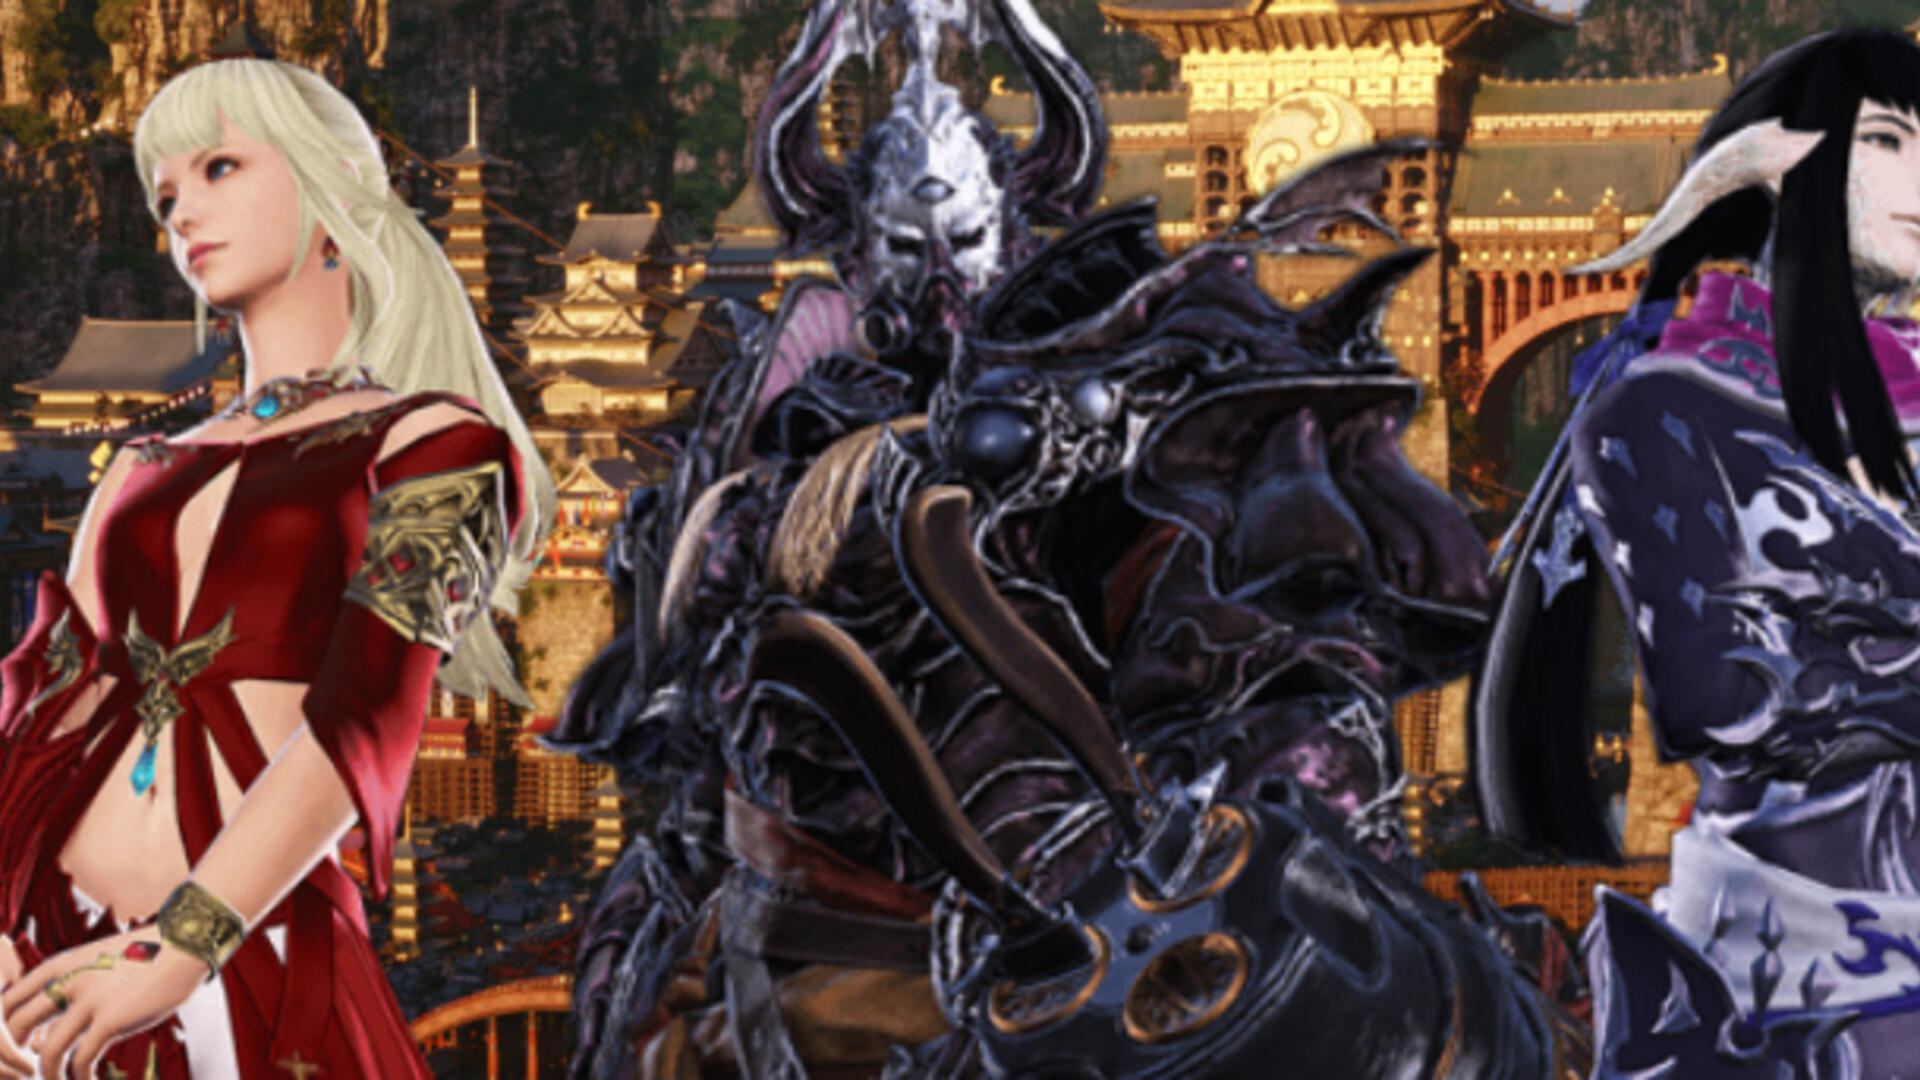 Final Fantasy XIV Stormblood Early Access Issues See Some Players